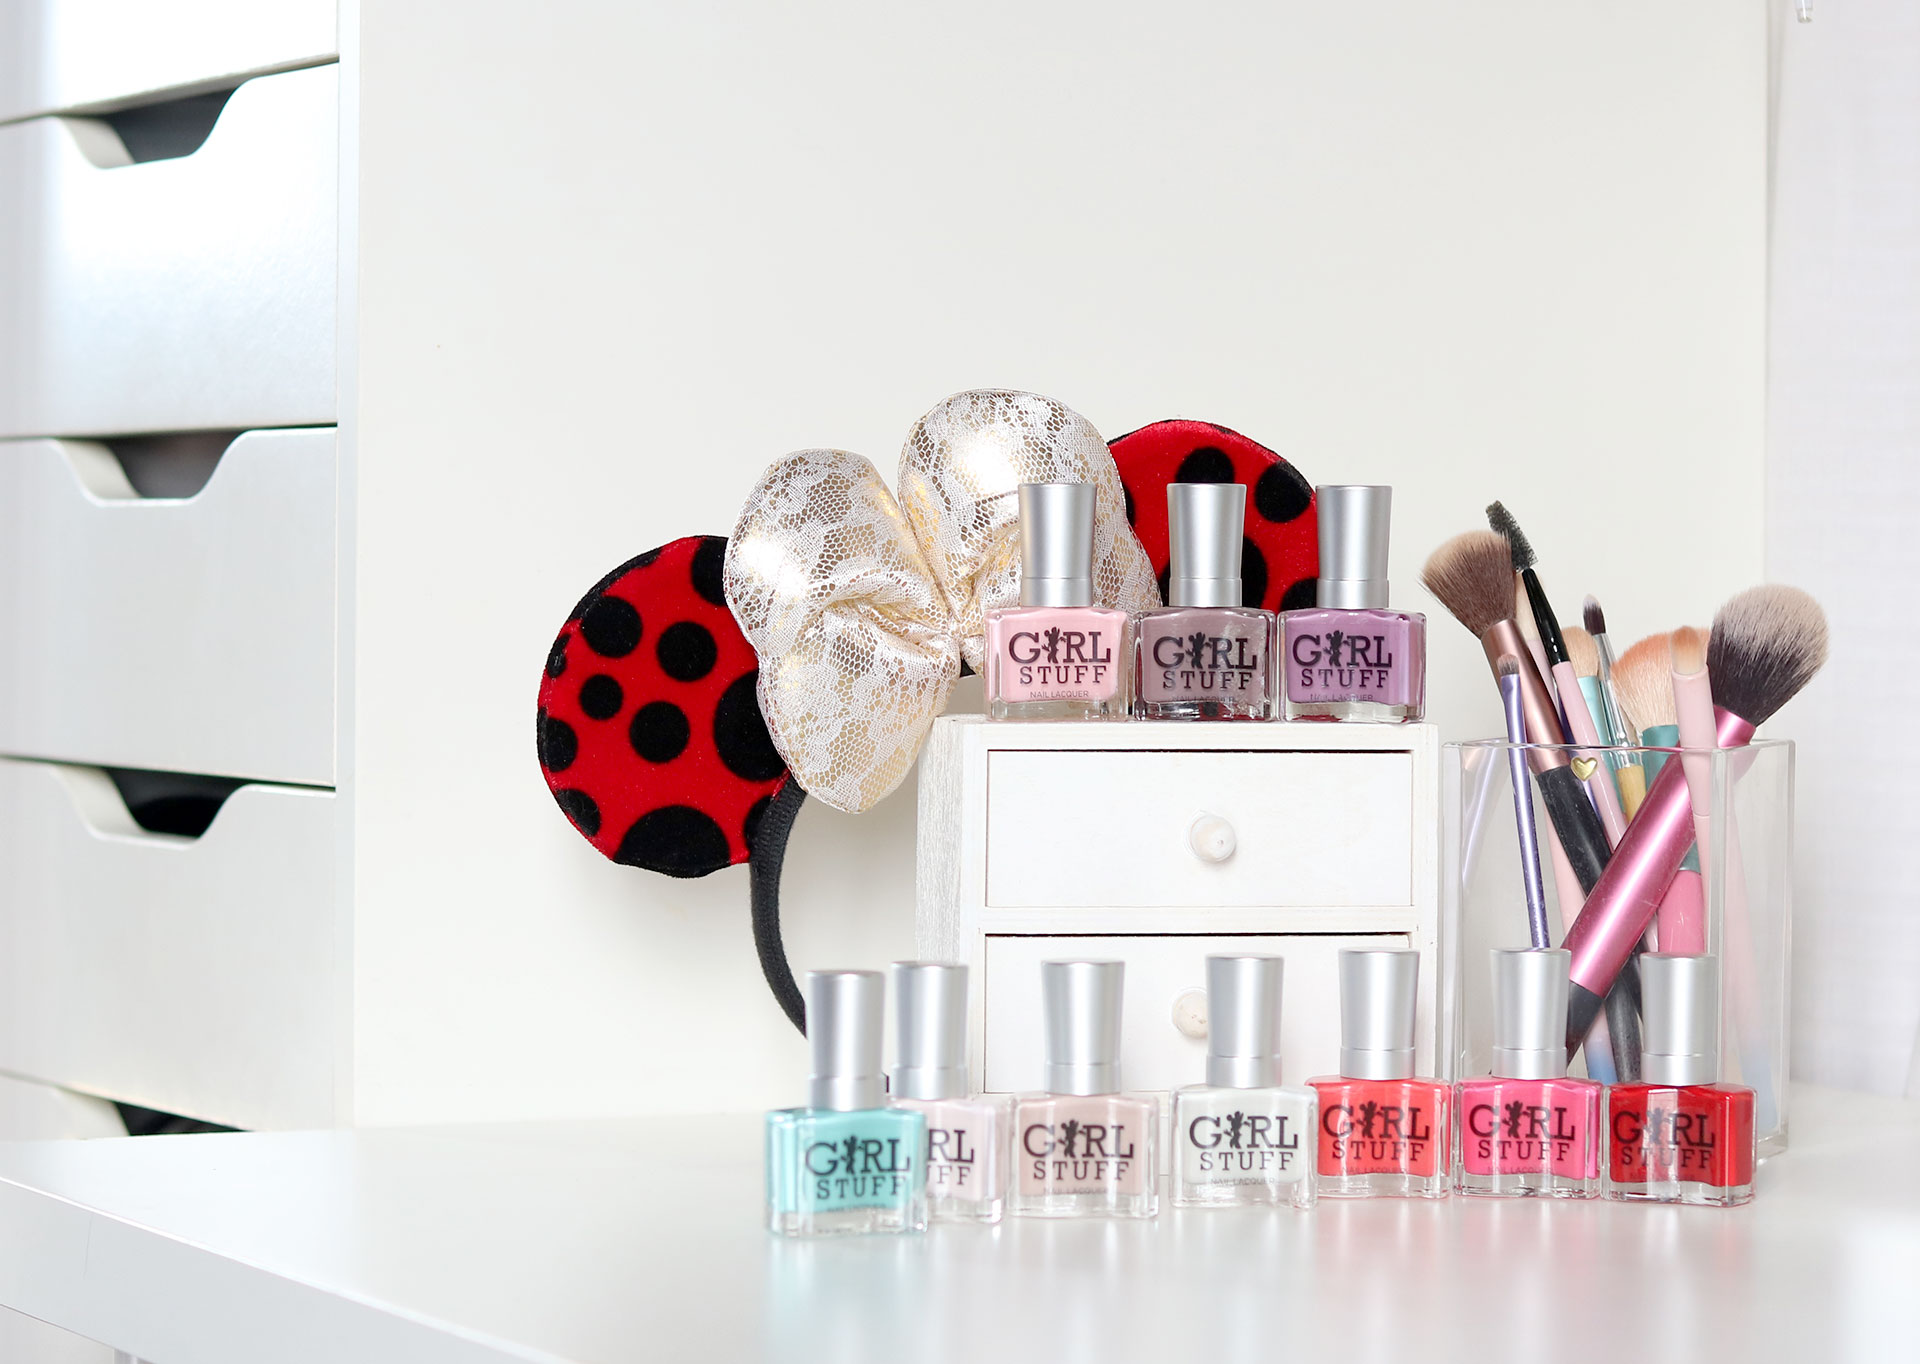 1 Girlstuff Minnie Mouse Nail Lacquers Collection Review Swatches Photos - Gen-zel She Sings Beauty